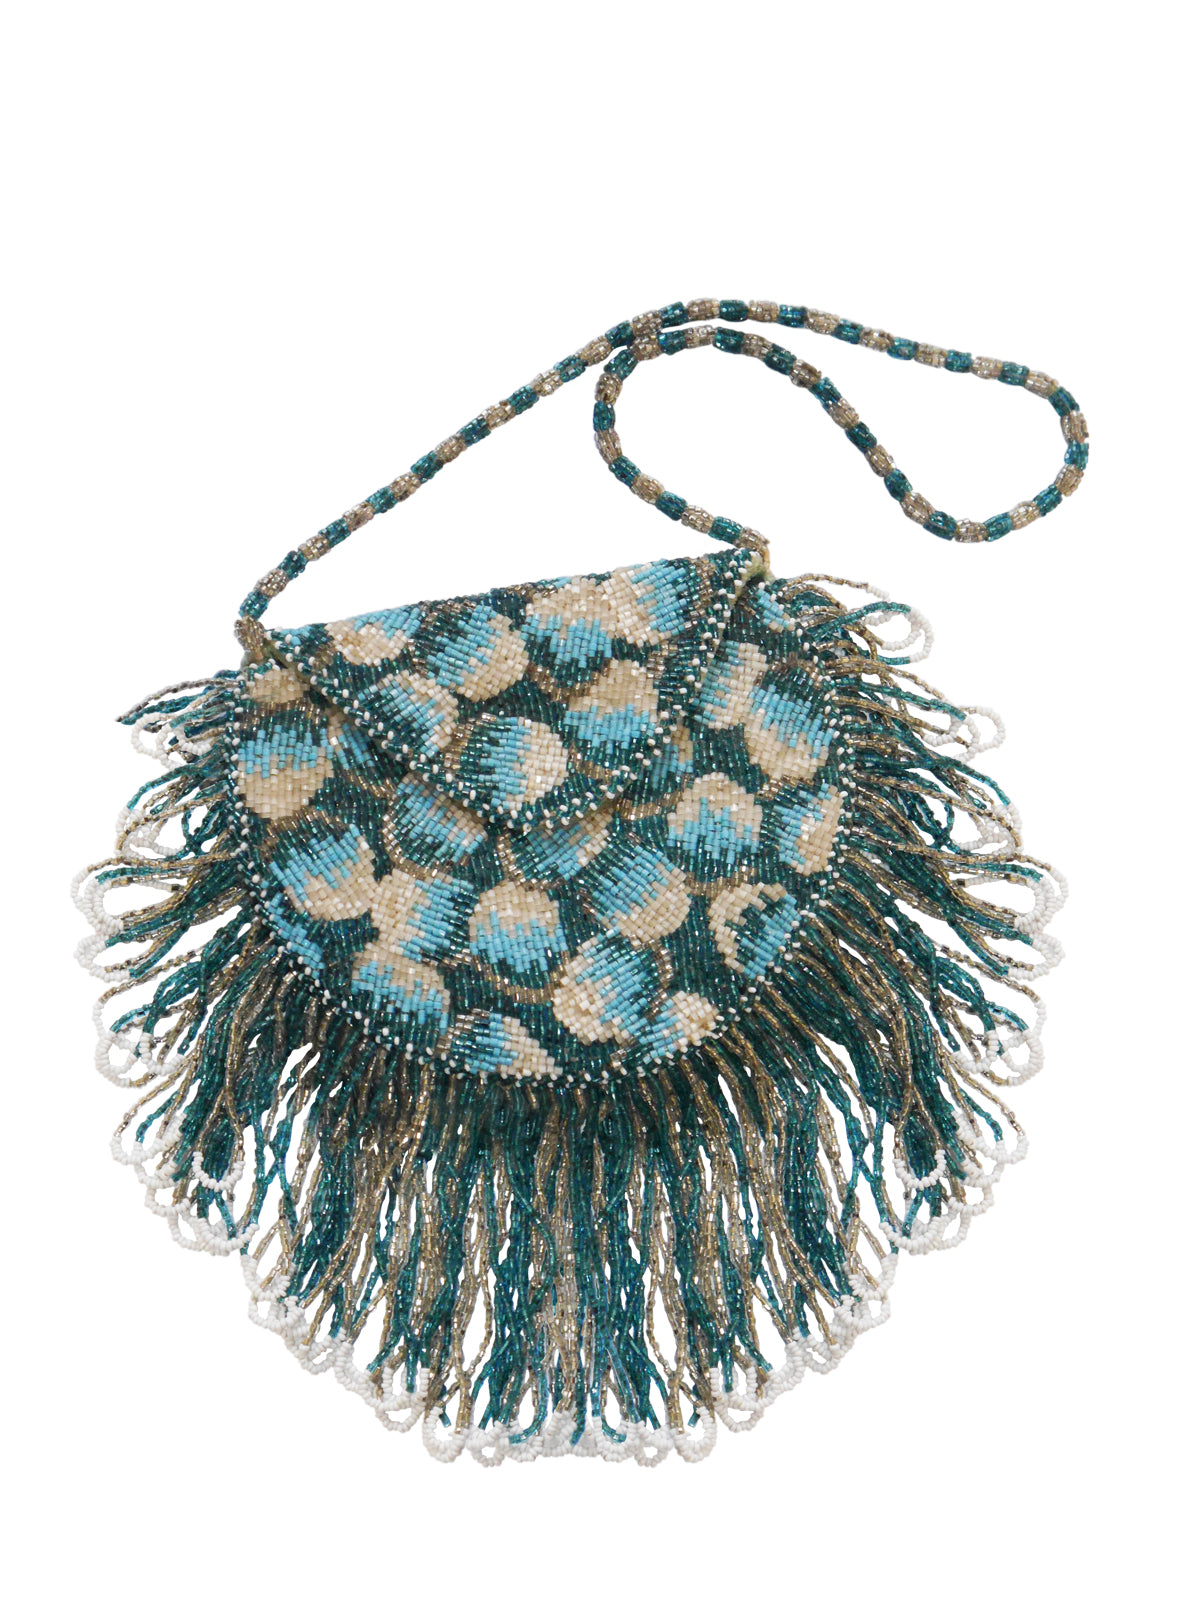 Antique 1920s Beaded Fringed Flapper Evening Bag